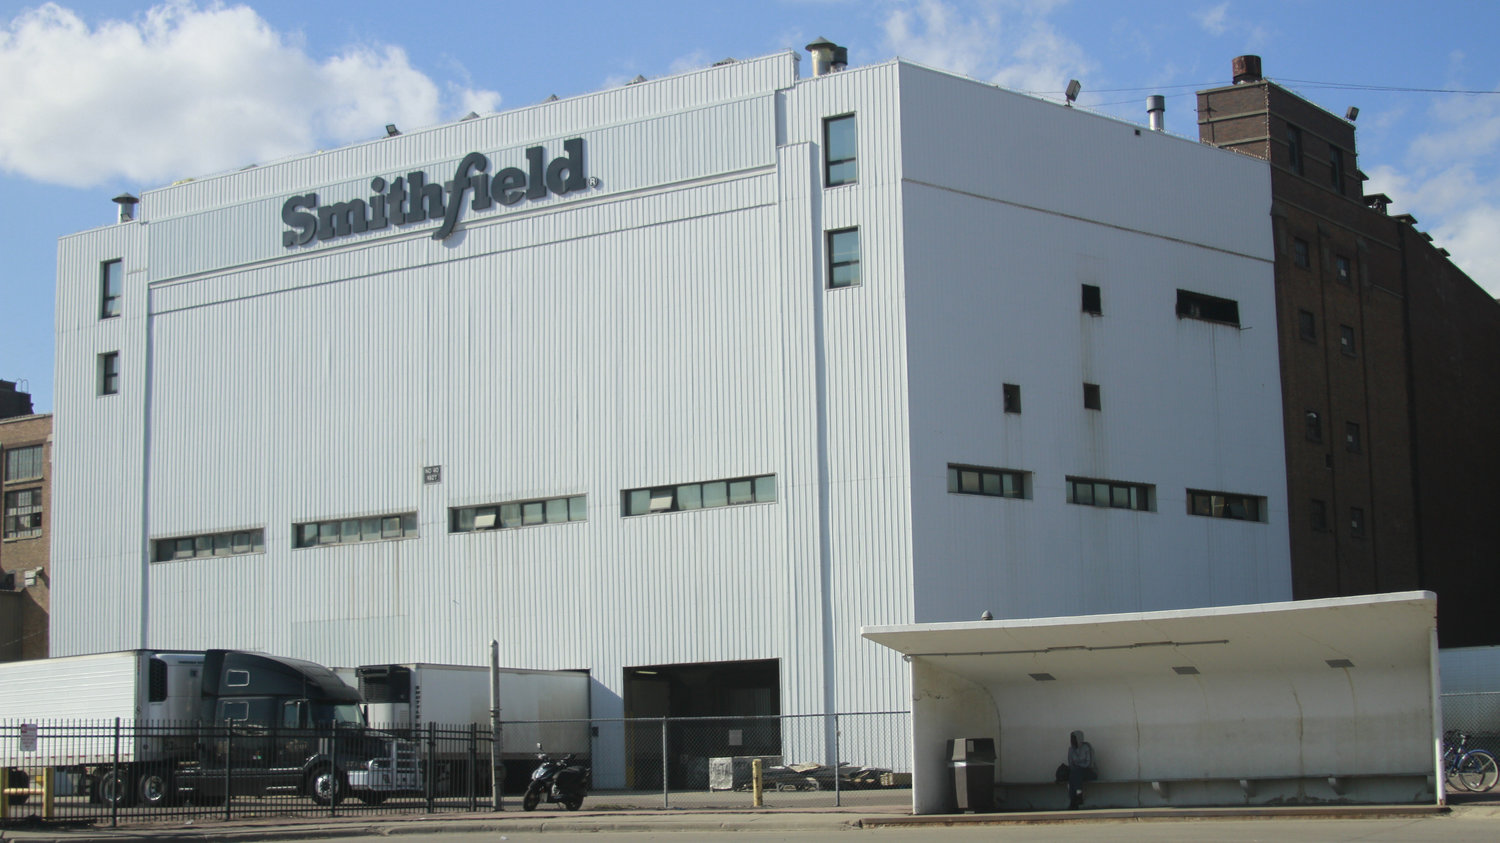 The front of a large, pale gray warehouse with the word 'Smithfield' across the top in dark gray